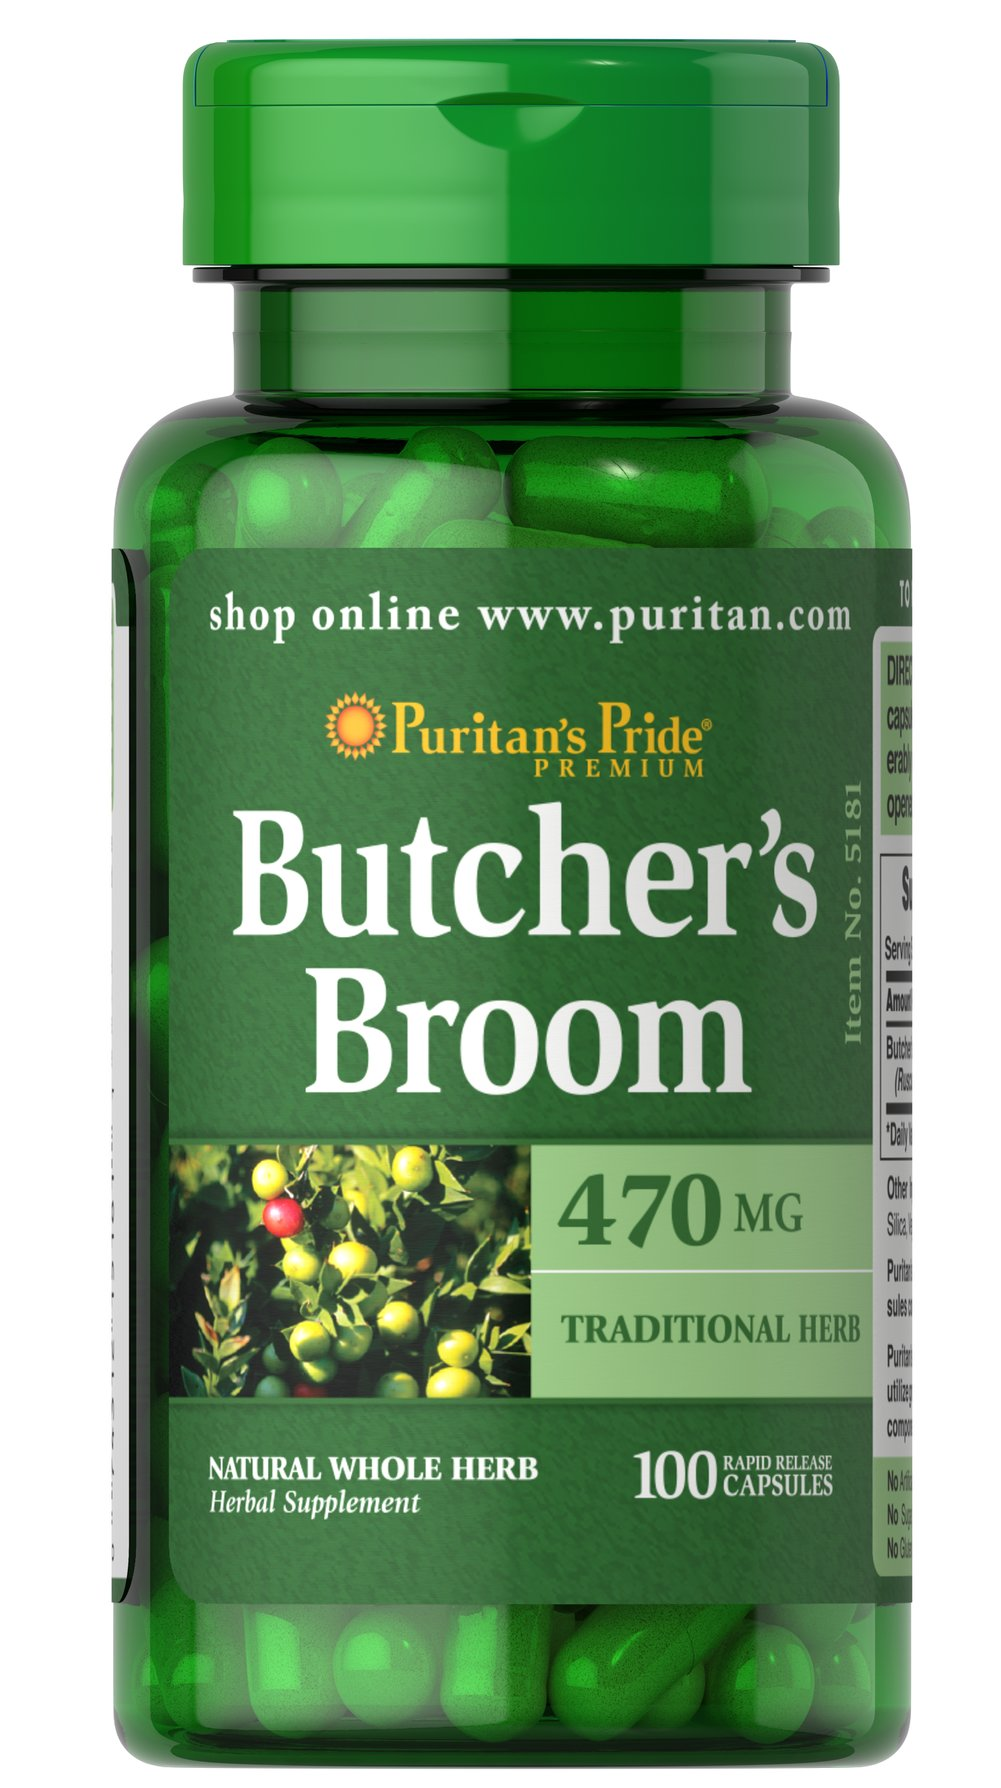 Butcher's Broom 470 mg <p>Butcher's Broom contains beneficial ruscogenins and flavonoids, two phytochemical substances that help support leg vein health.** Butcher's Broom has been used for decades to promote vein health, and studies indicate that Butcher's Broom helps relieve the itching, tingling and cramping caused by occasional discomfort occurring in the lower extremities, especially during mid-life.**</p><ul><li>Puritan's Pride preservative-free